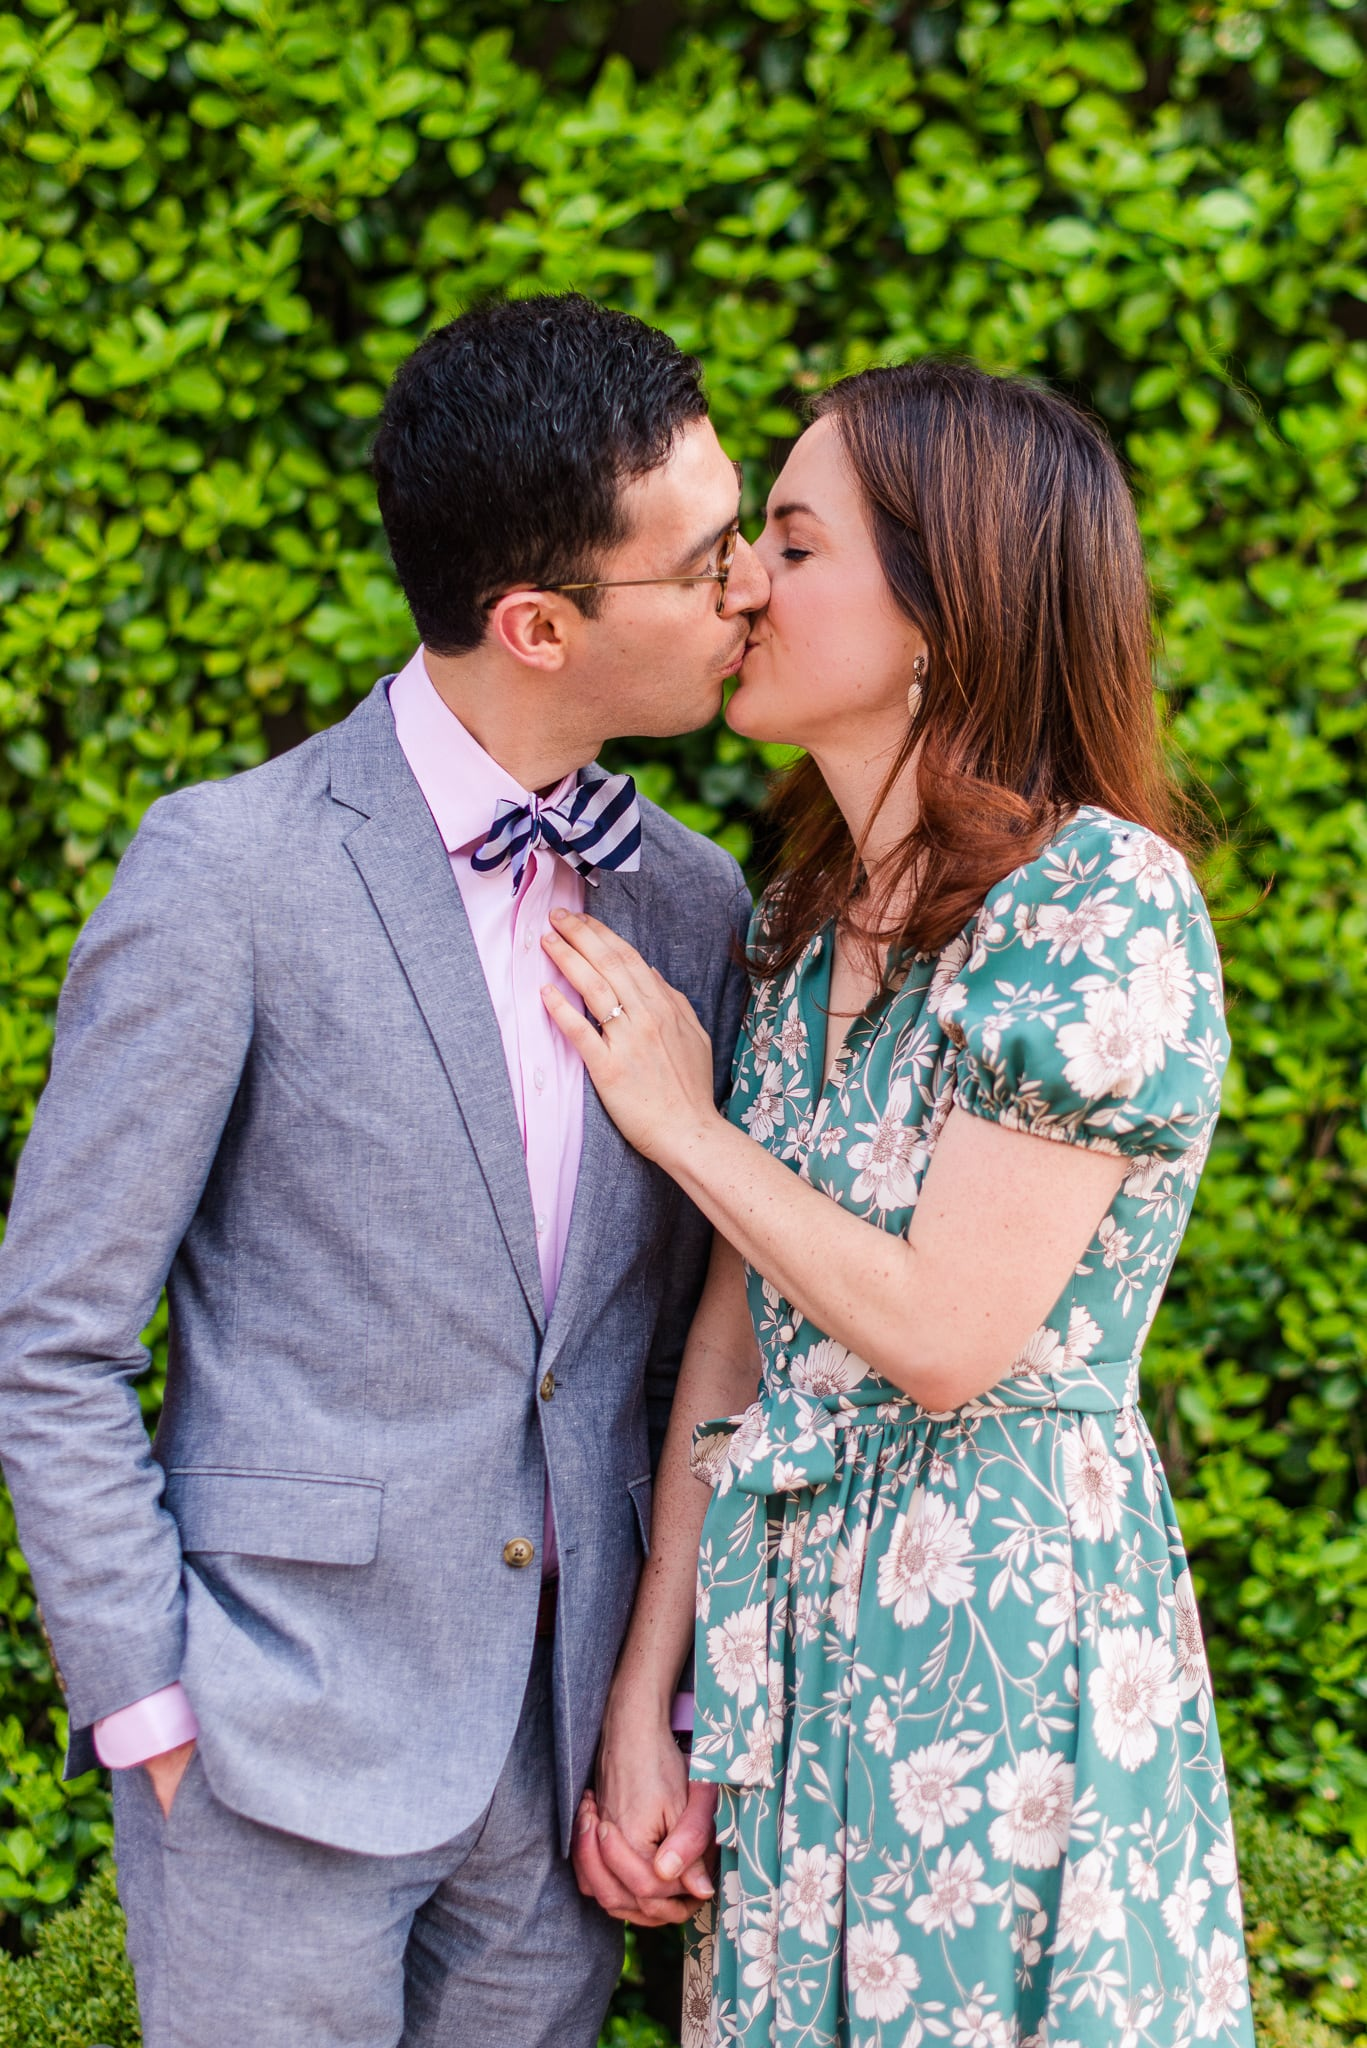 An engaged couple shares a kiss in front of a wall of shrubbery during their engagement session in Old Town Alexandria